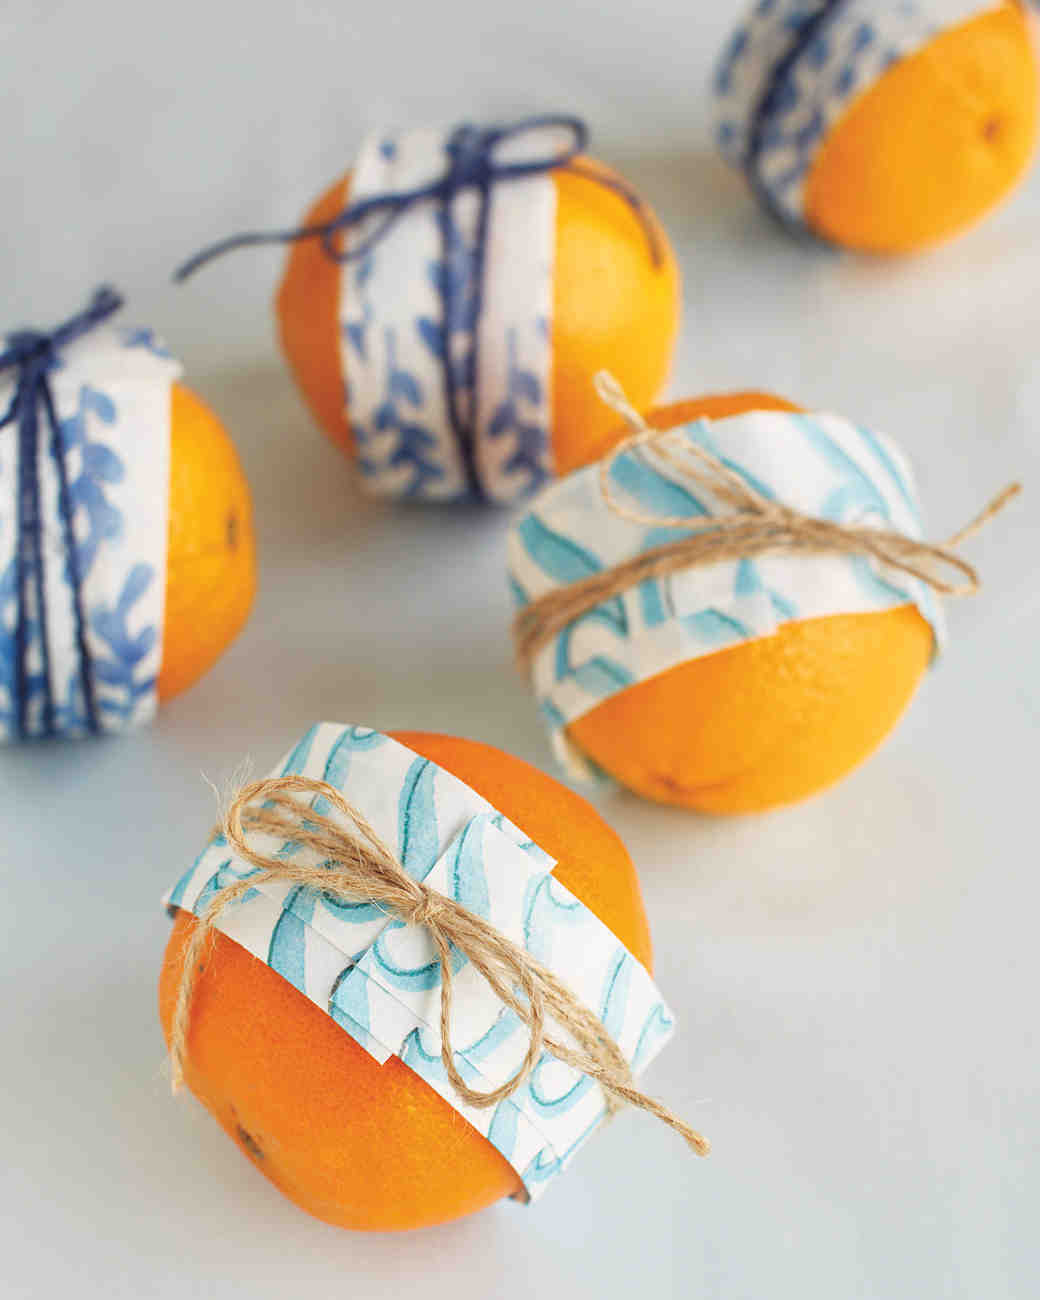 Gift-Wrapped Oranges